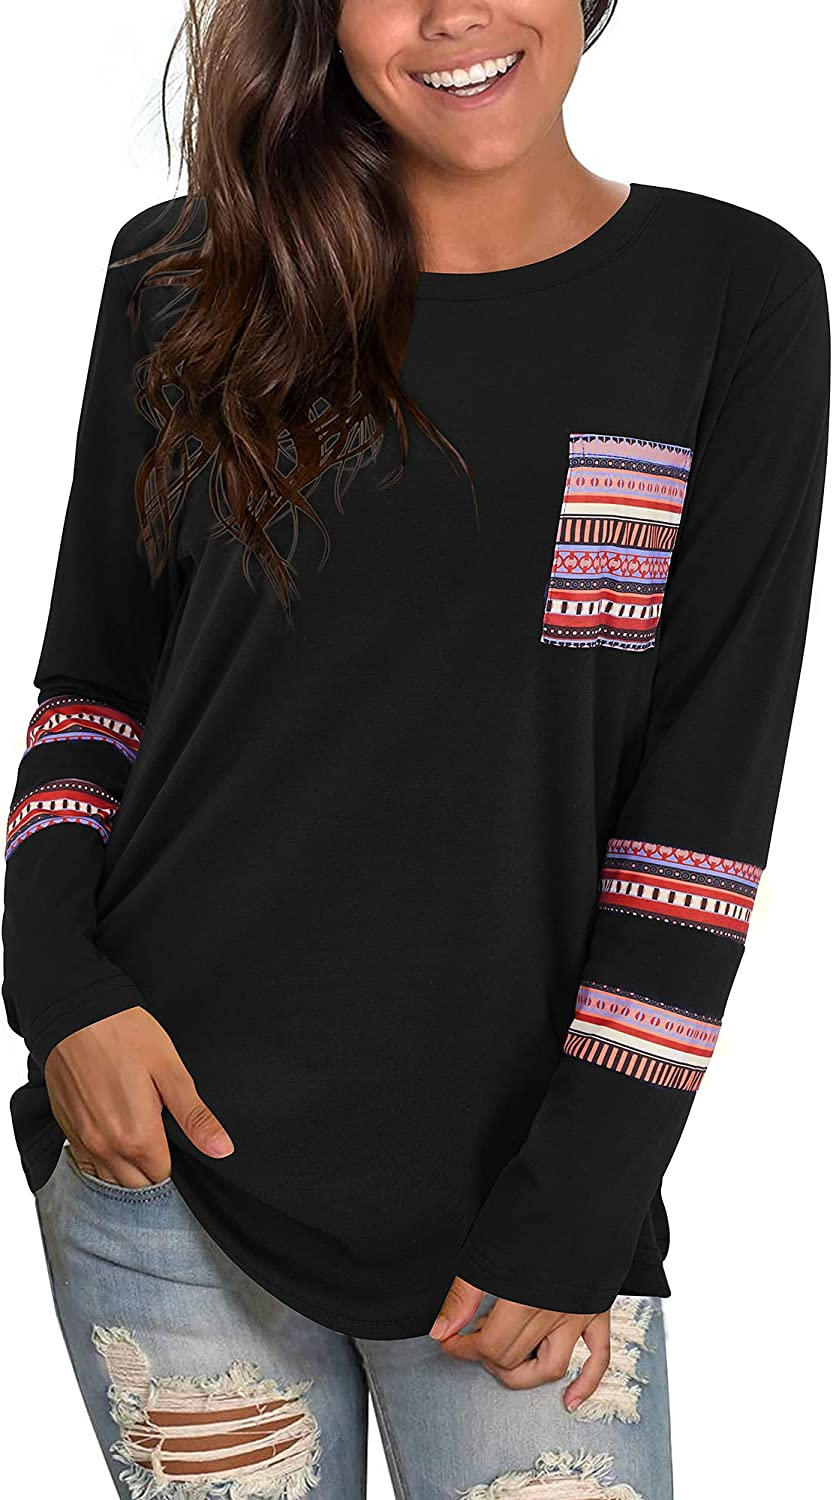 KILIG Women's Long Sleeve T-Shirt Round Neck Leopard Color Block Patchwork Casual Tunic Tops with Pocket